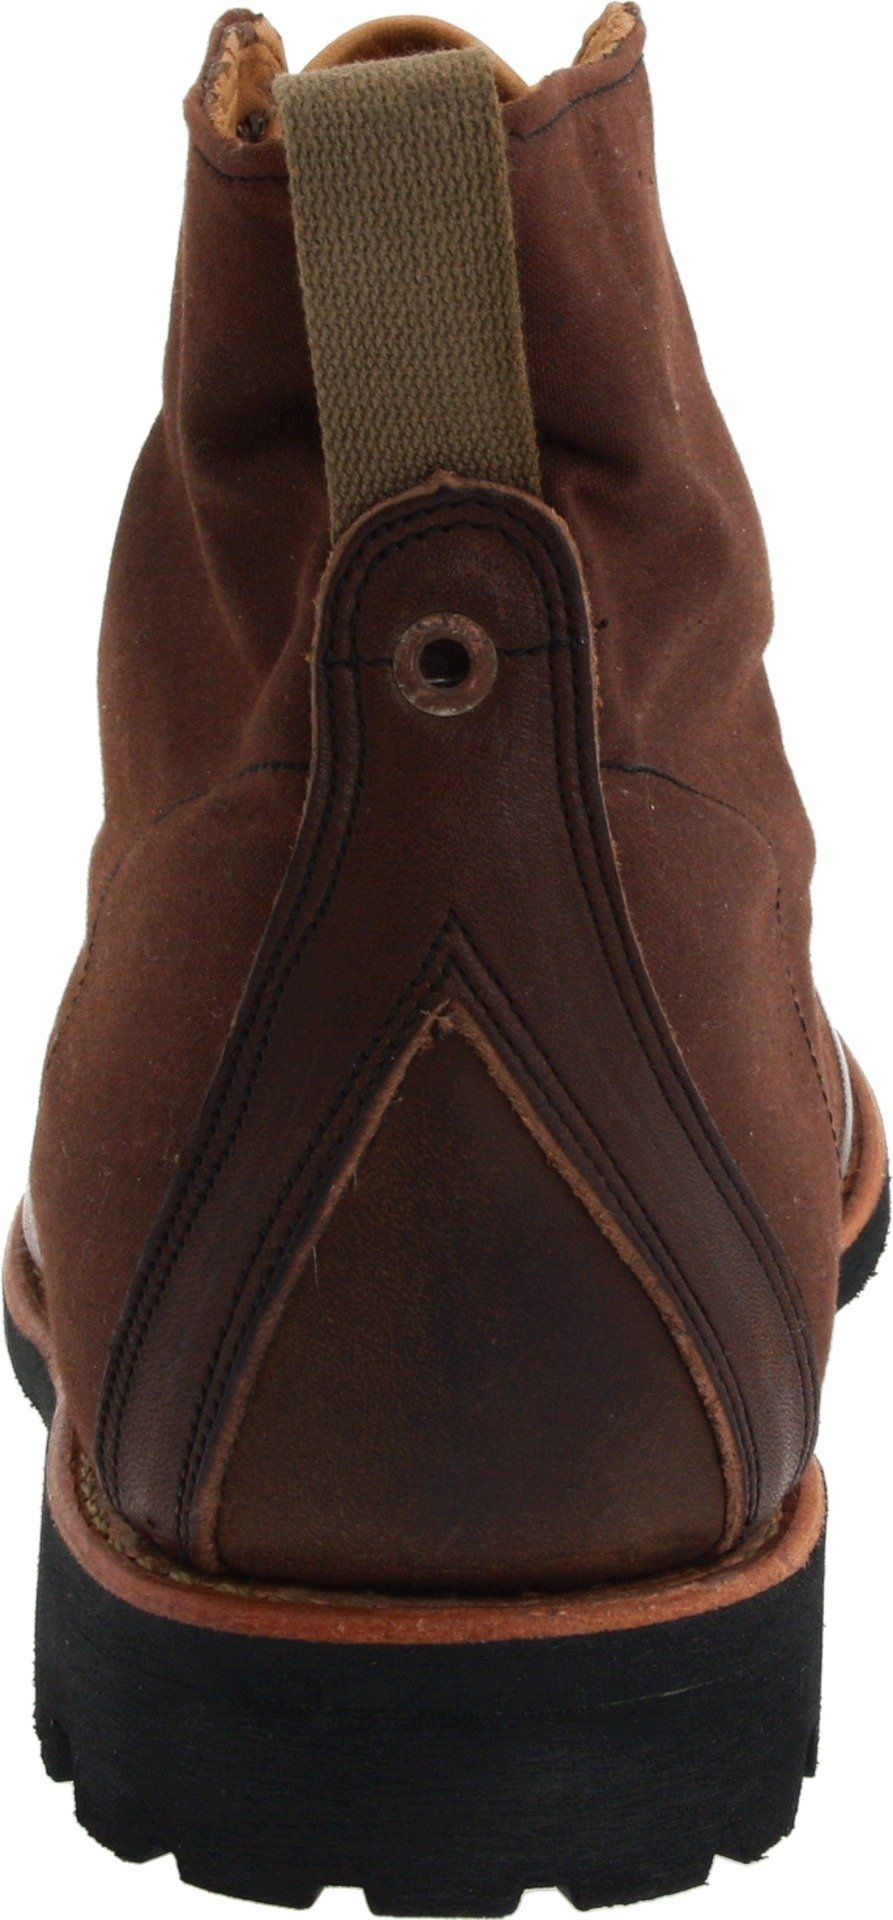 27607c004f15 Timberland Boot Company Mens Mudlark Safari Chukka Boot Fox Brown 11 M US      Learn more by visiting the image link. (This is an affiliate link)   ...